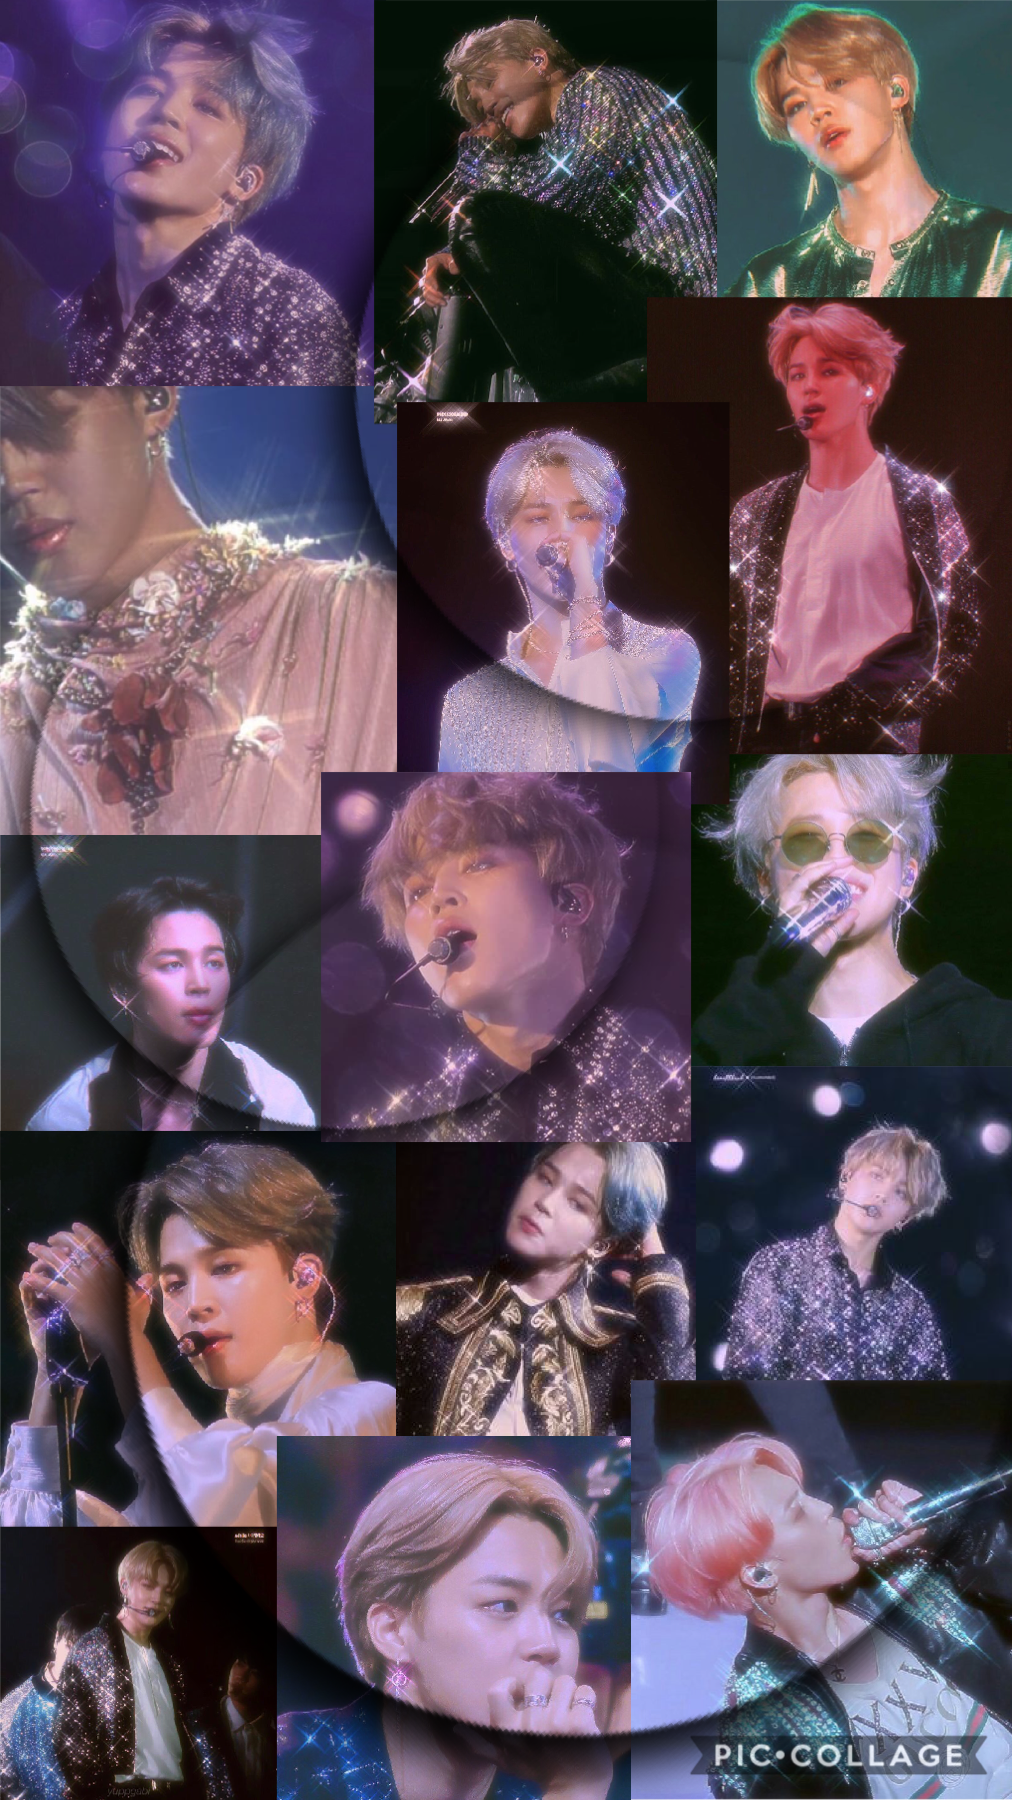 can someone please tell me how to do these sparkle edits for free? 🥺😢